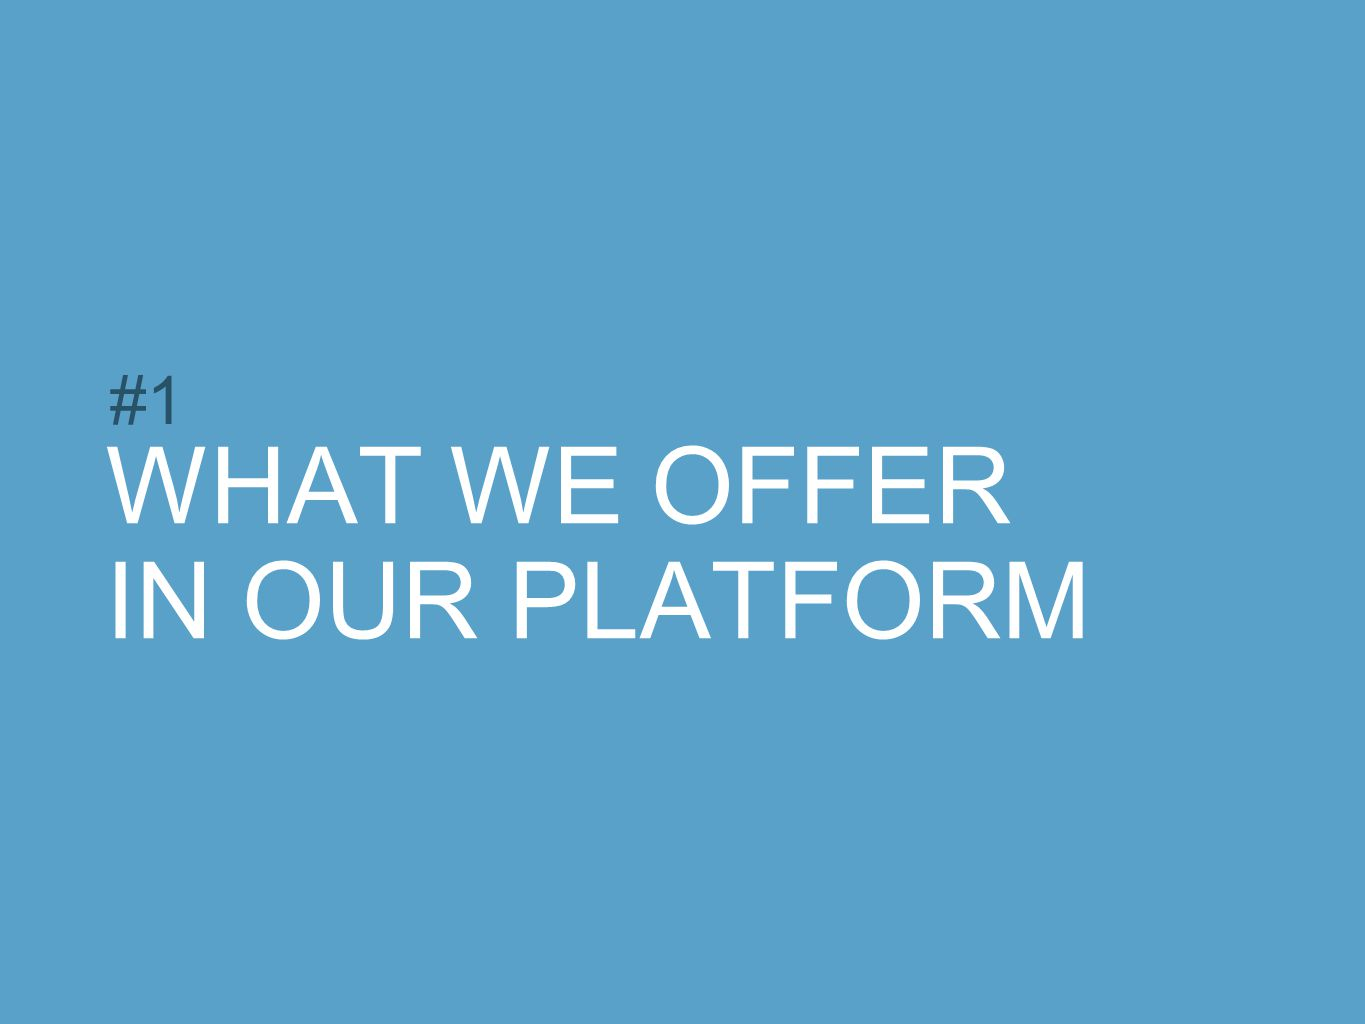 WHAT WE OFFER IN OUR PLATFORM #1